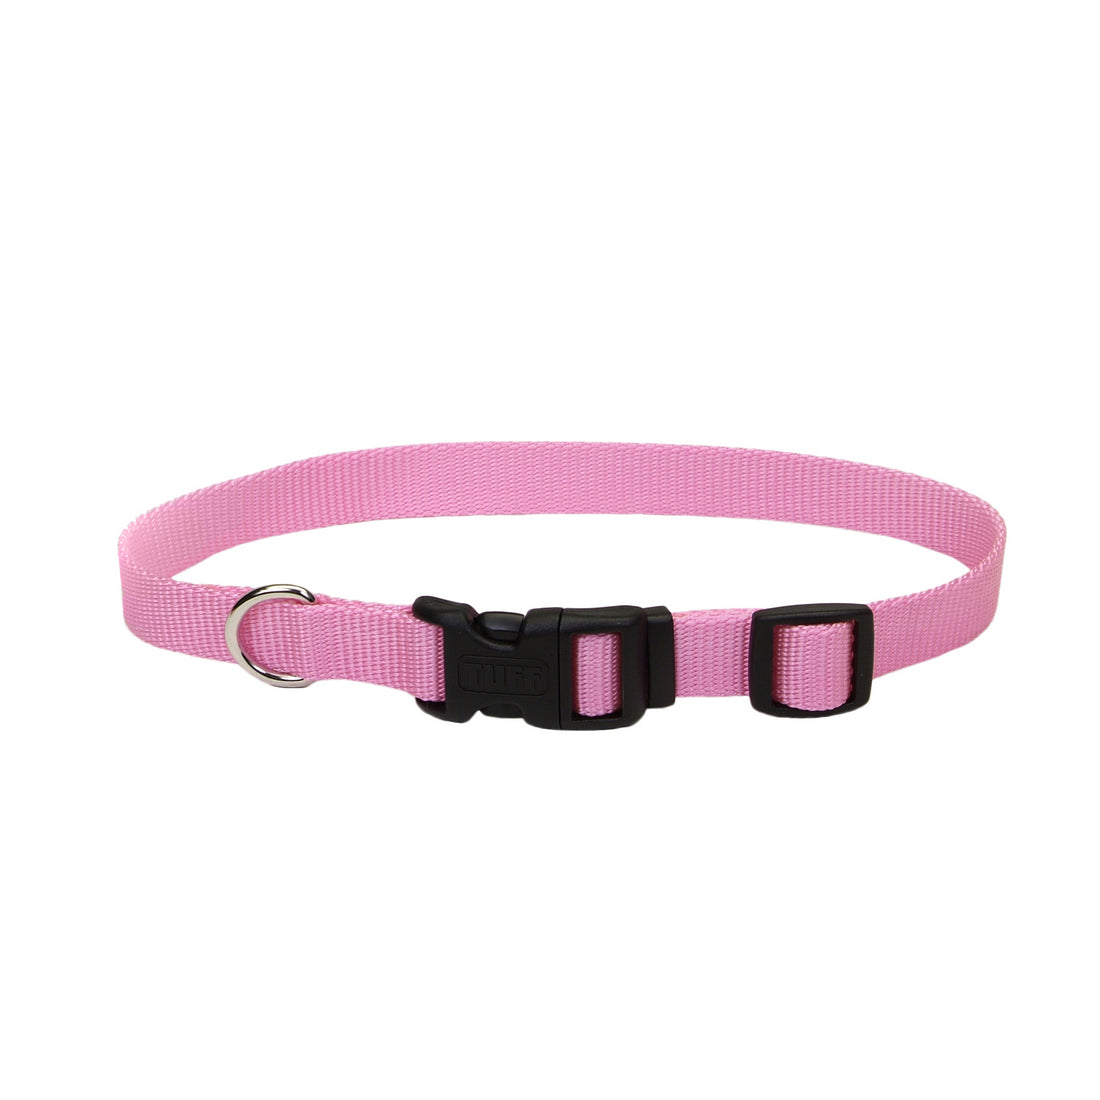 Coastal Adjustable Nylon Collar with Tuff Buckle Large Pink